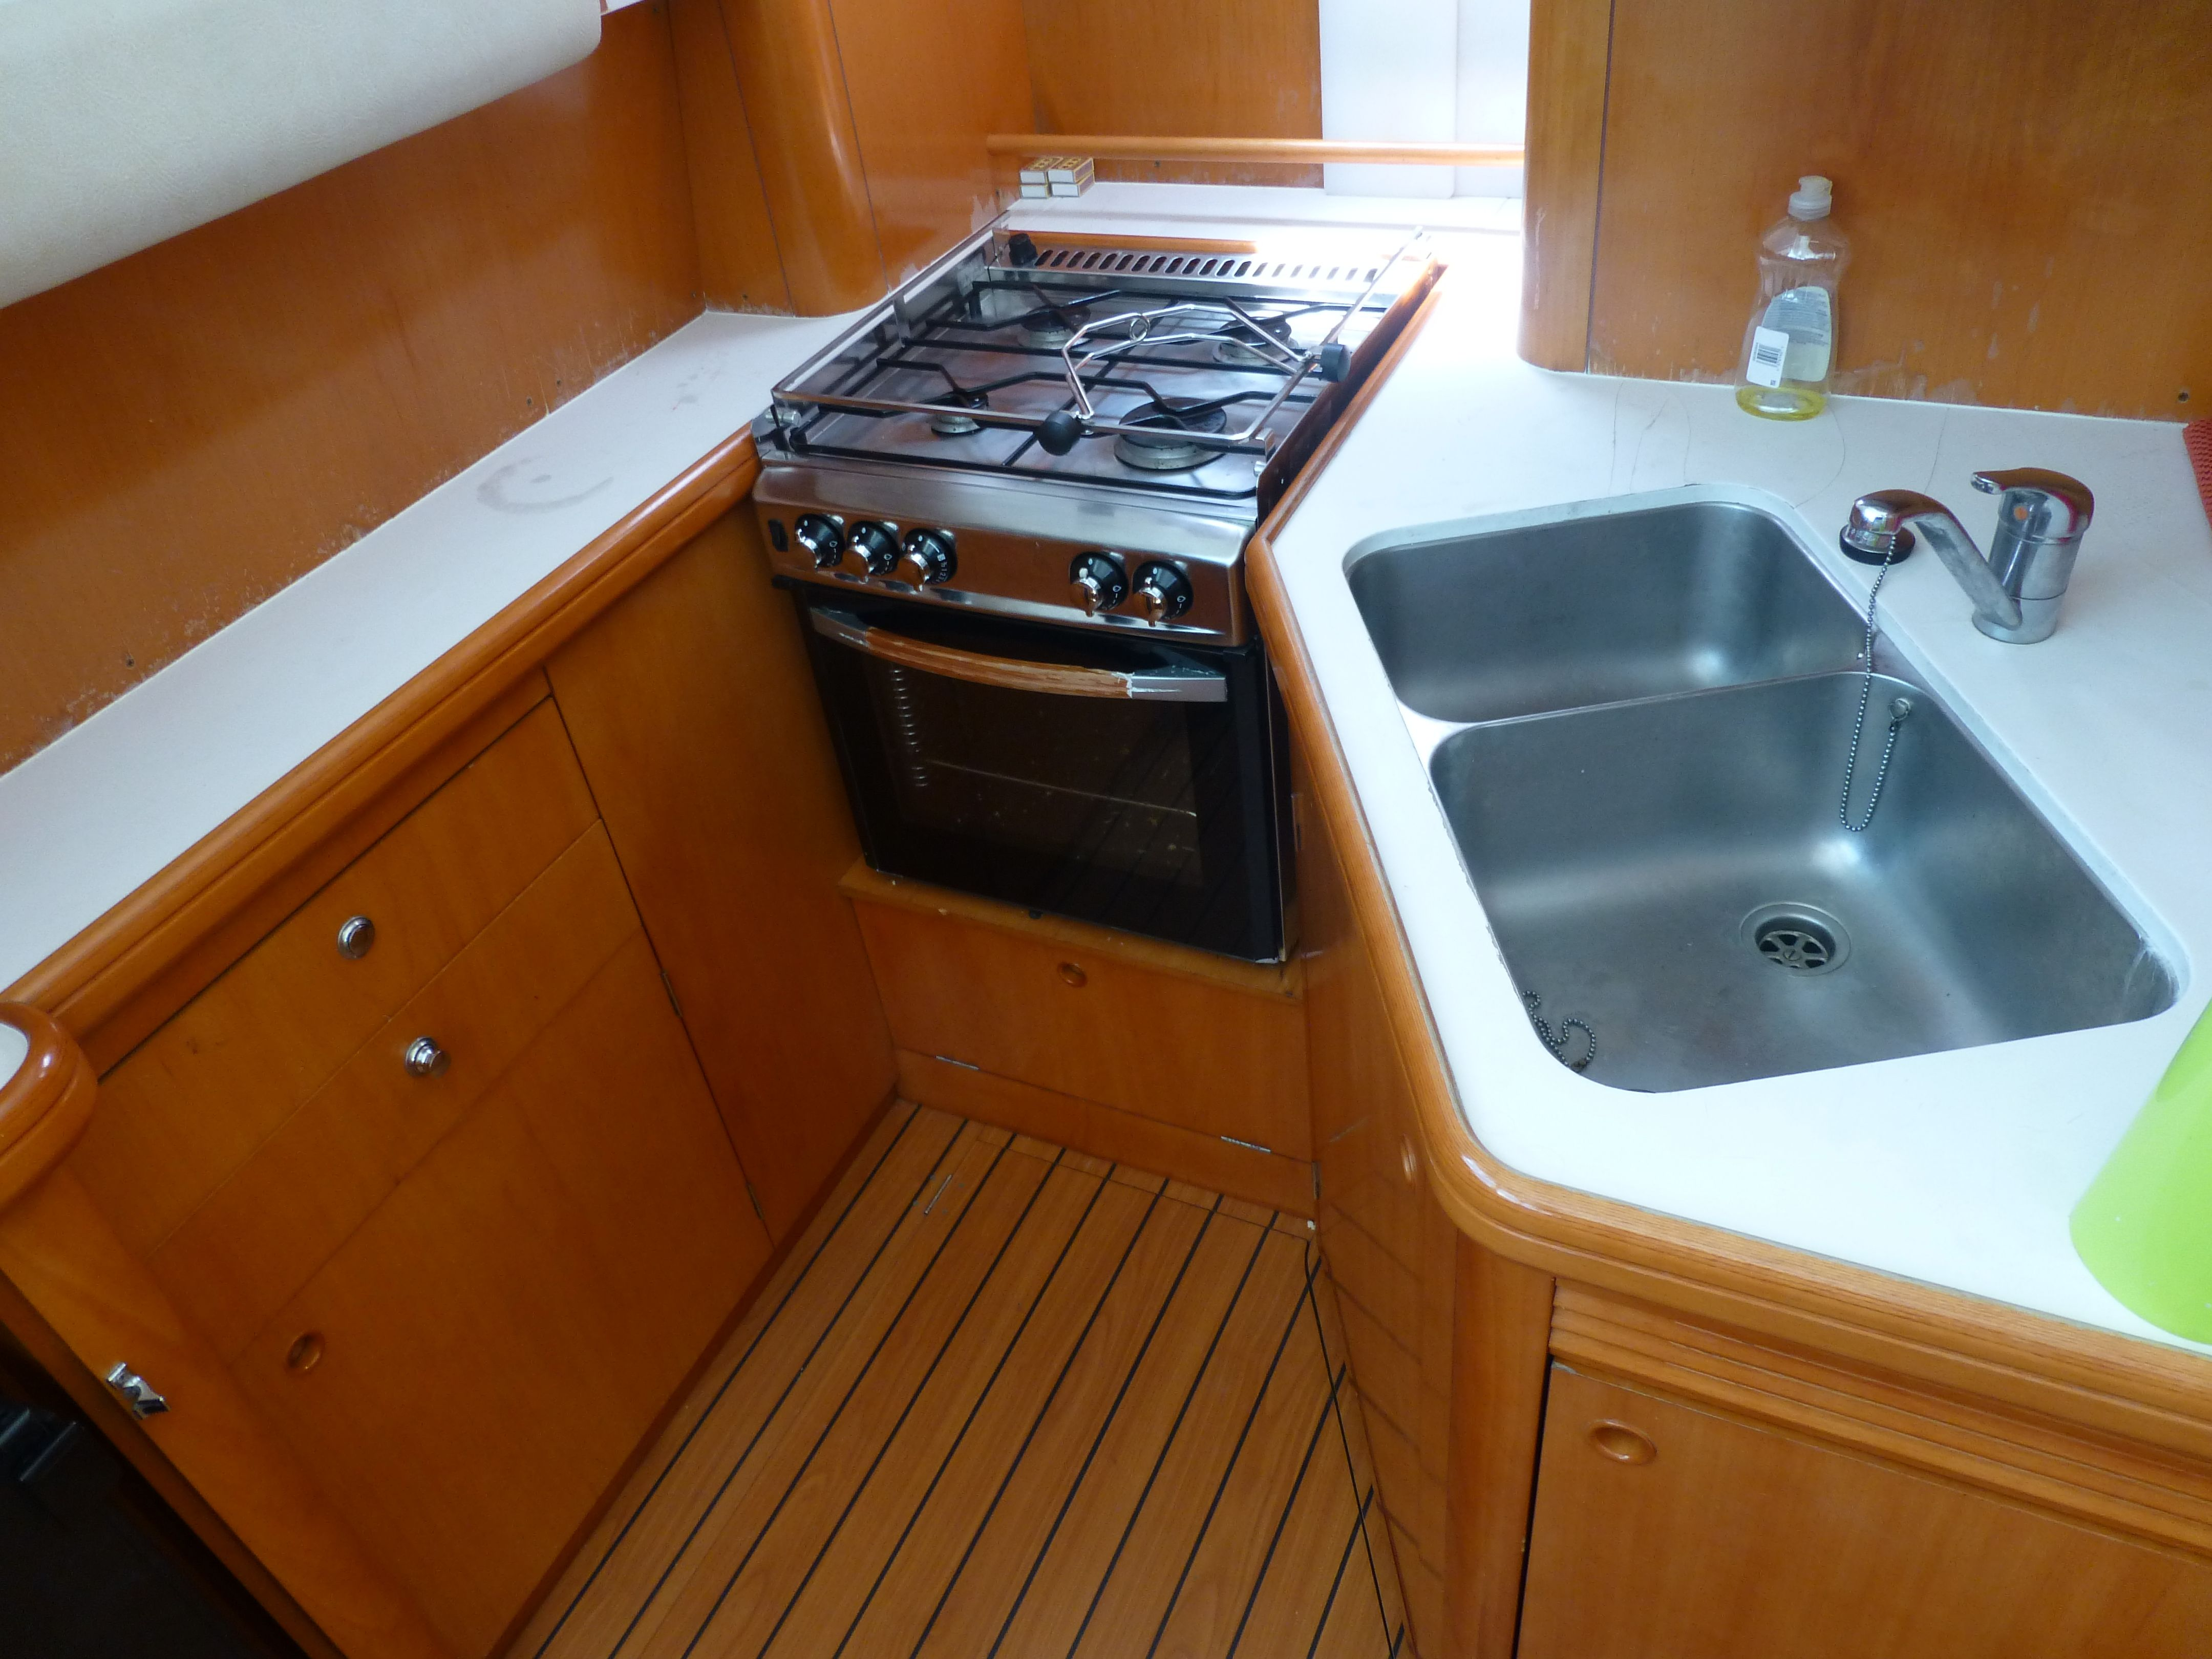 338a9385869f3a384299ed4d4d051f28 Ideas For Kitchen Yacht Galleys on ship galley kitchen, cabin galley kitchen, boat galley kitchen, office galley kitchen, apartment galley kitchen, condo galley kitchen, beach galley kitchen, restaurant galley kitchen, hotel galley kitchen, white galley kitchen, cottage galley kitchen, swedish galley kitchen,